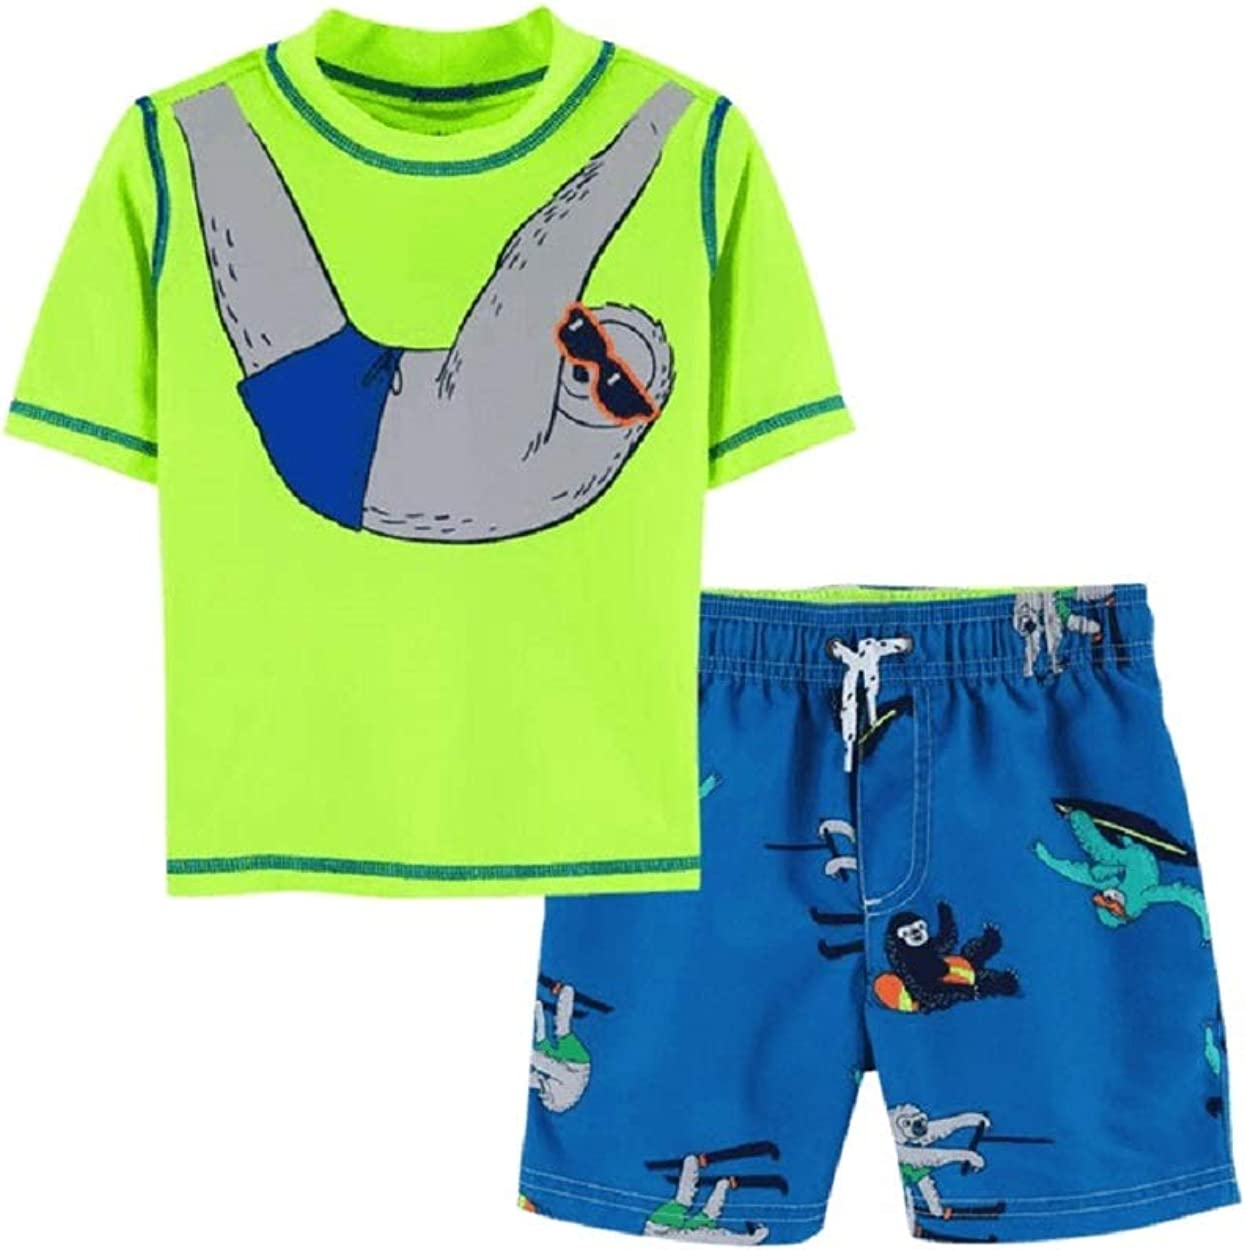 Carter's Baby Boys' 2- Piece Sloth Swim Bundle Set with UPF 50+ Sun Protection Size 6 Months Yellow